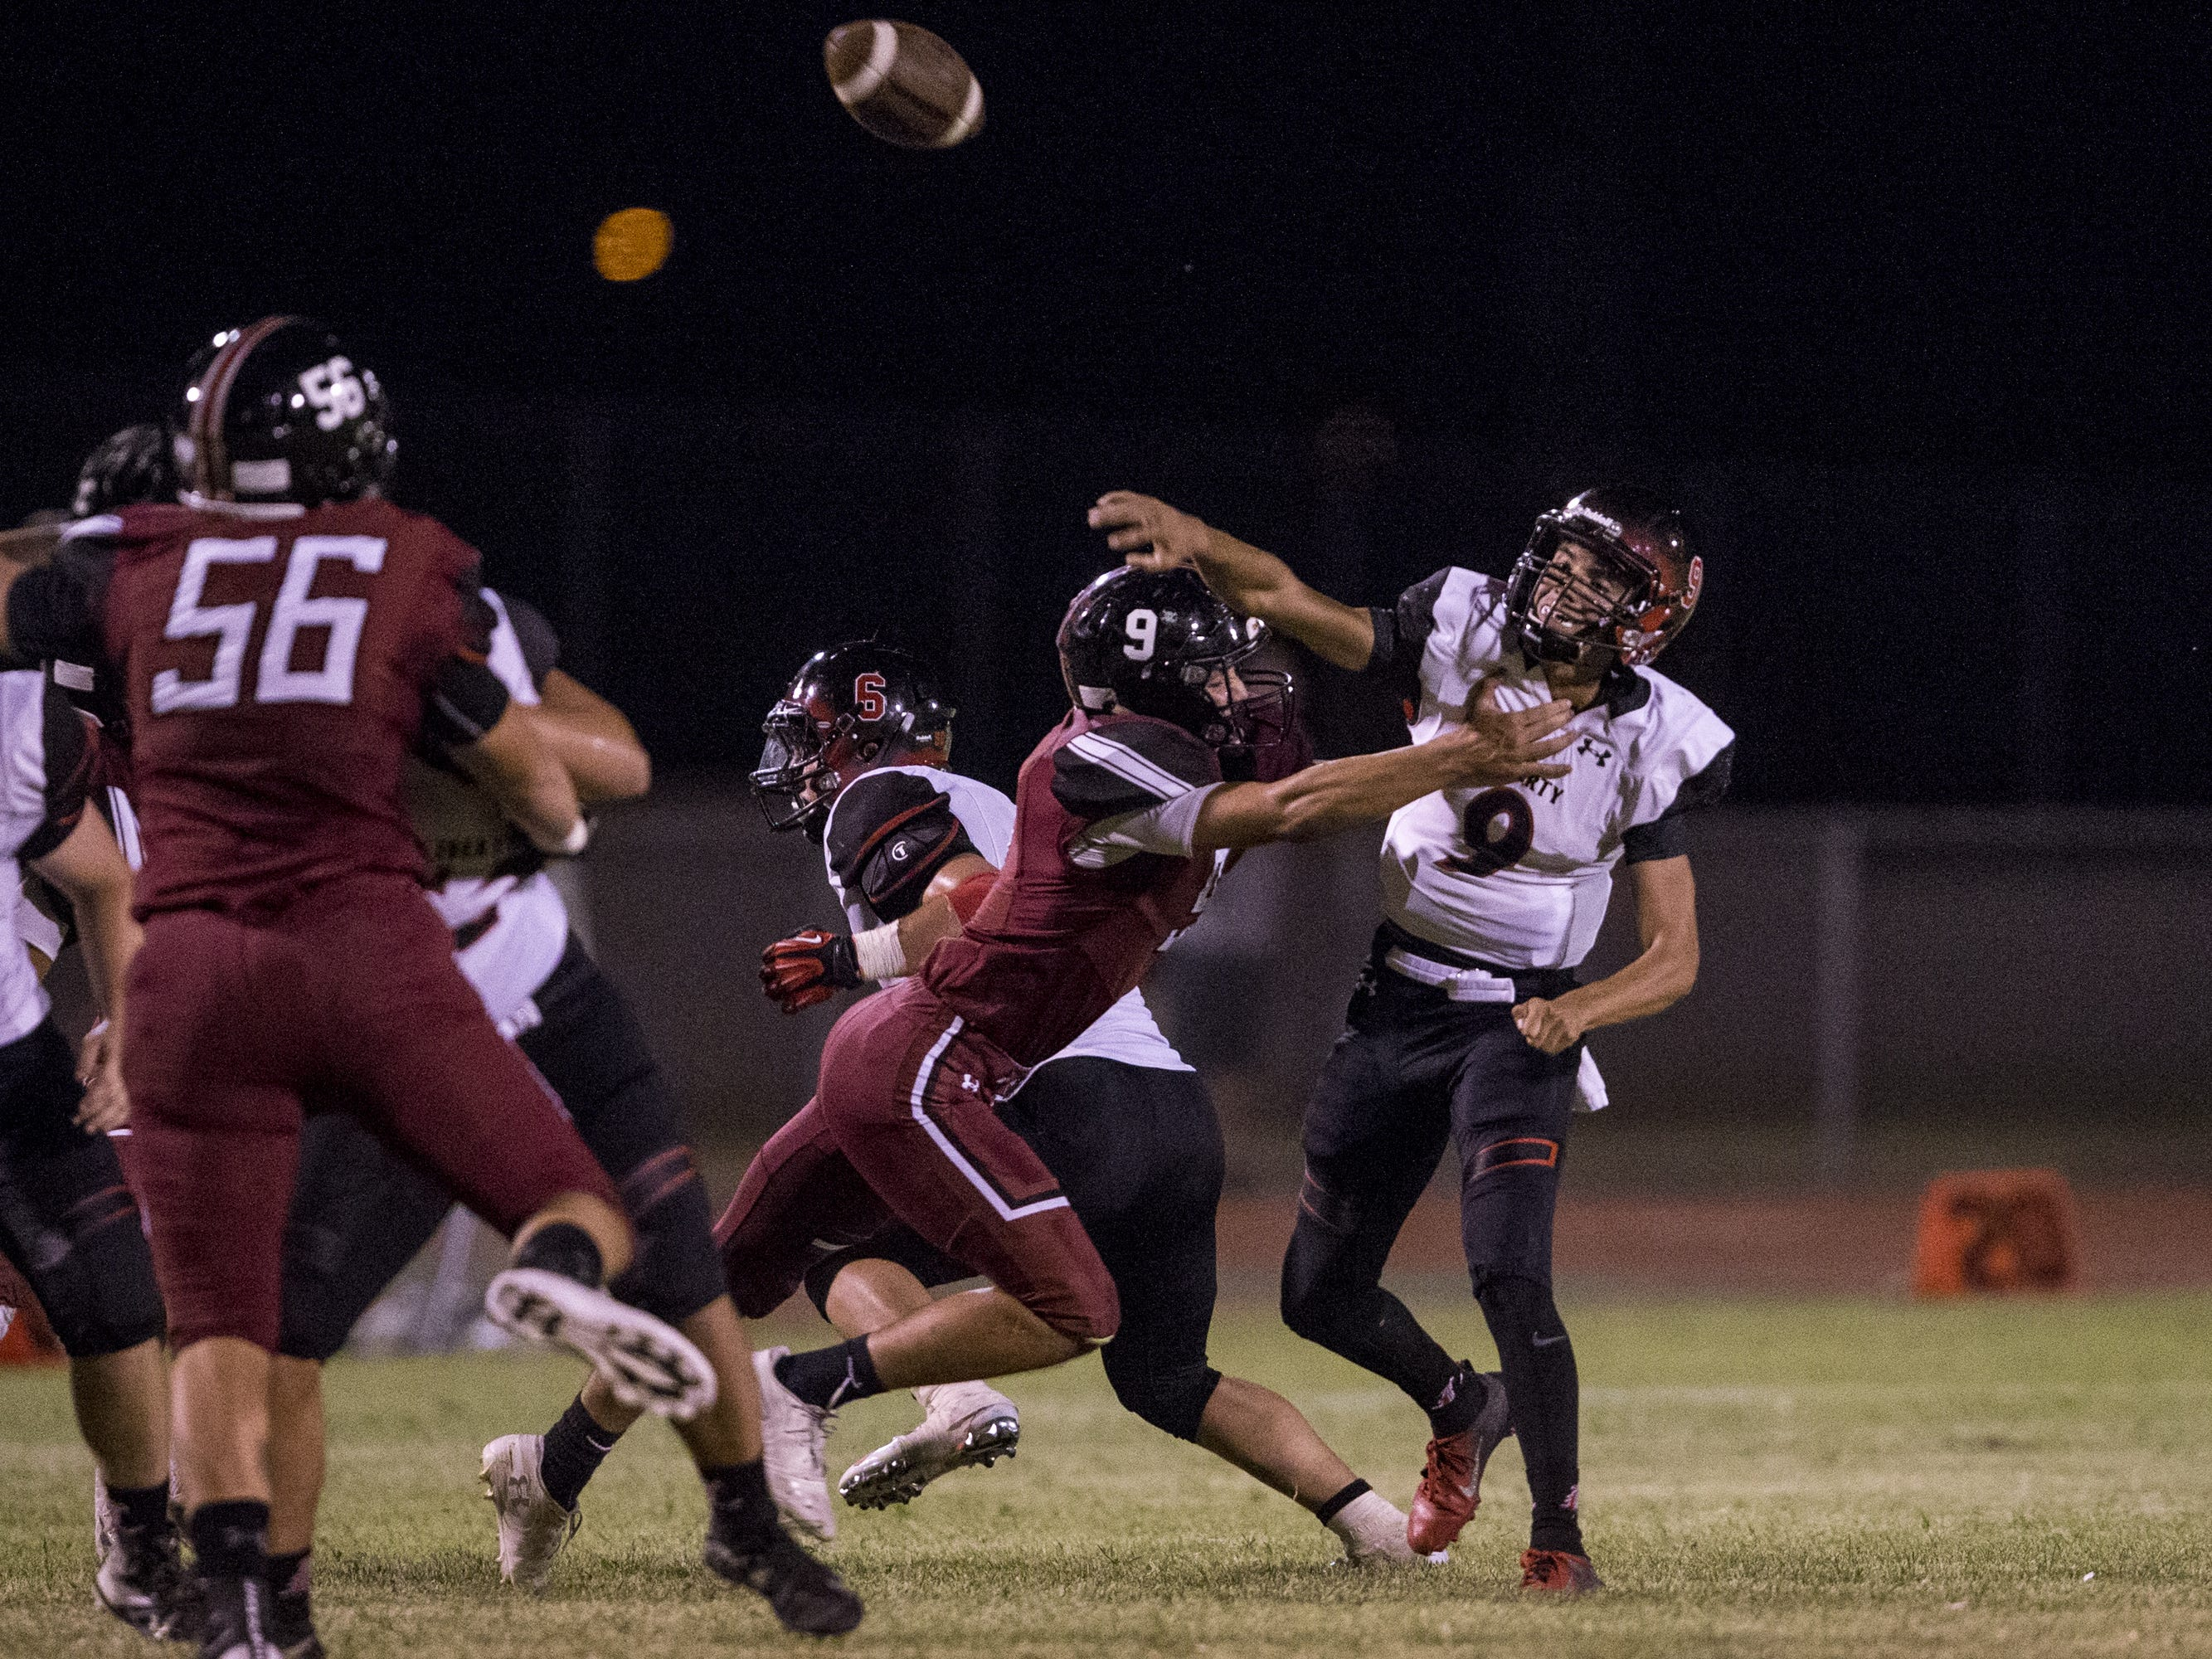 Liberty's Jonah Guevara throws against Desert Ridge in the 2nd quarter on Friday, Sept. 7, 2018, at Desert Ridge High School in Mesa, Ariz.  #azhsfb